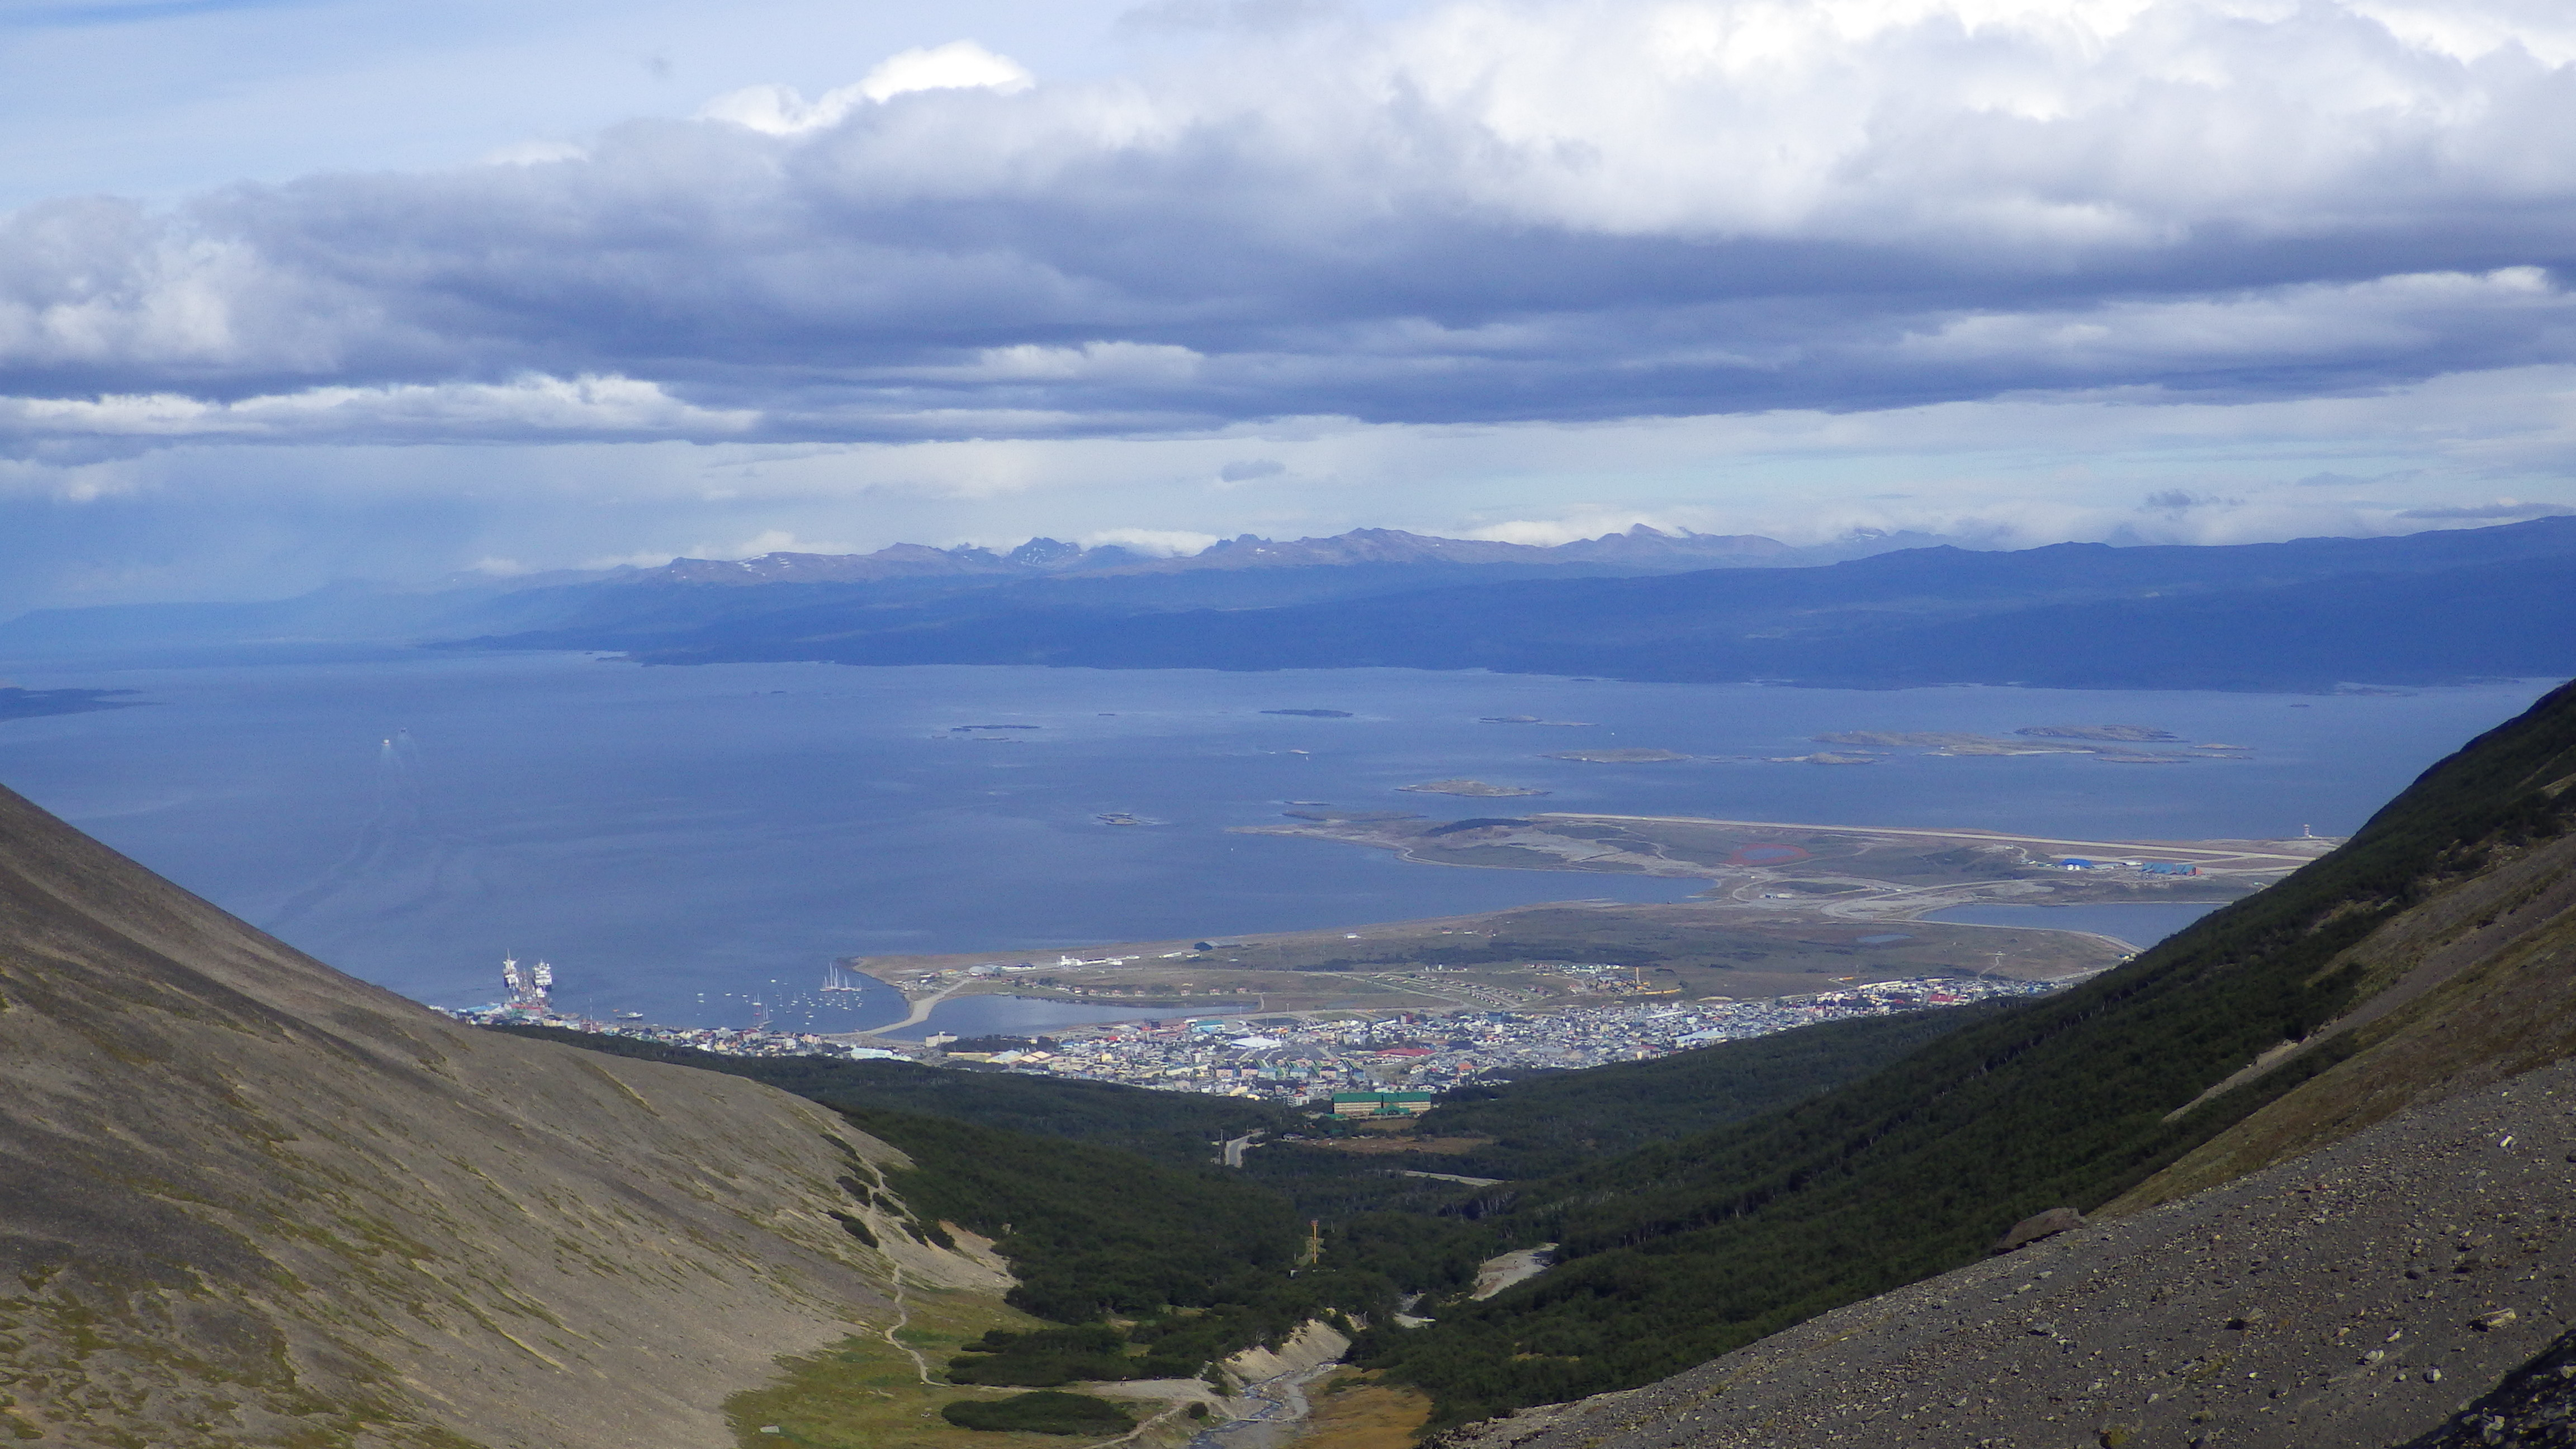 View of Ushuaia from above